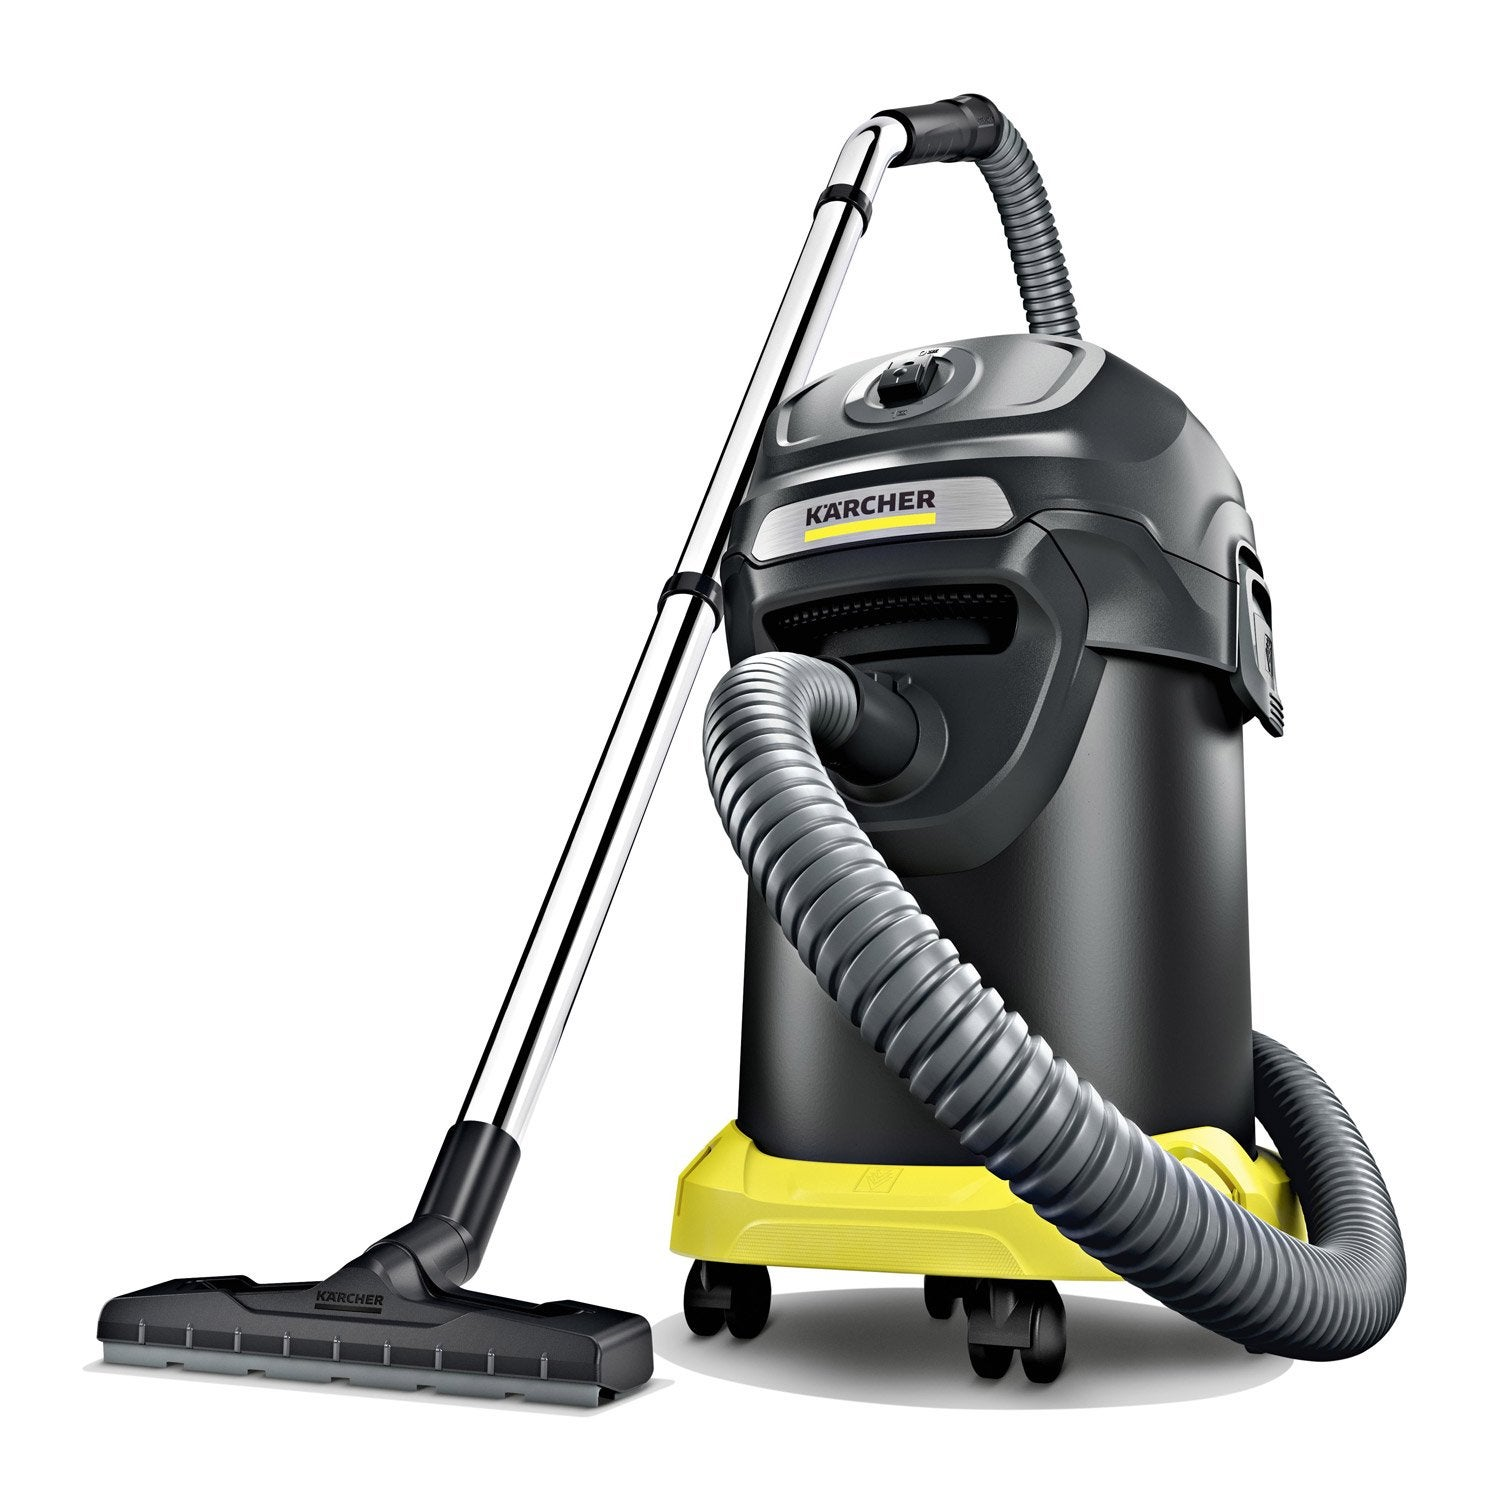 aspirateur karcher maison fabulous krcher aspirateur t with aspirateur karcher maison. Black Bedroom Furniture Sets. Home Design Ideas